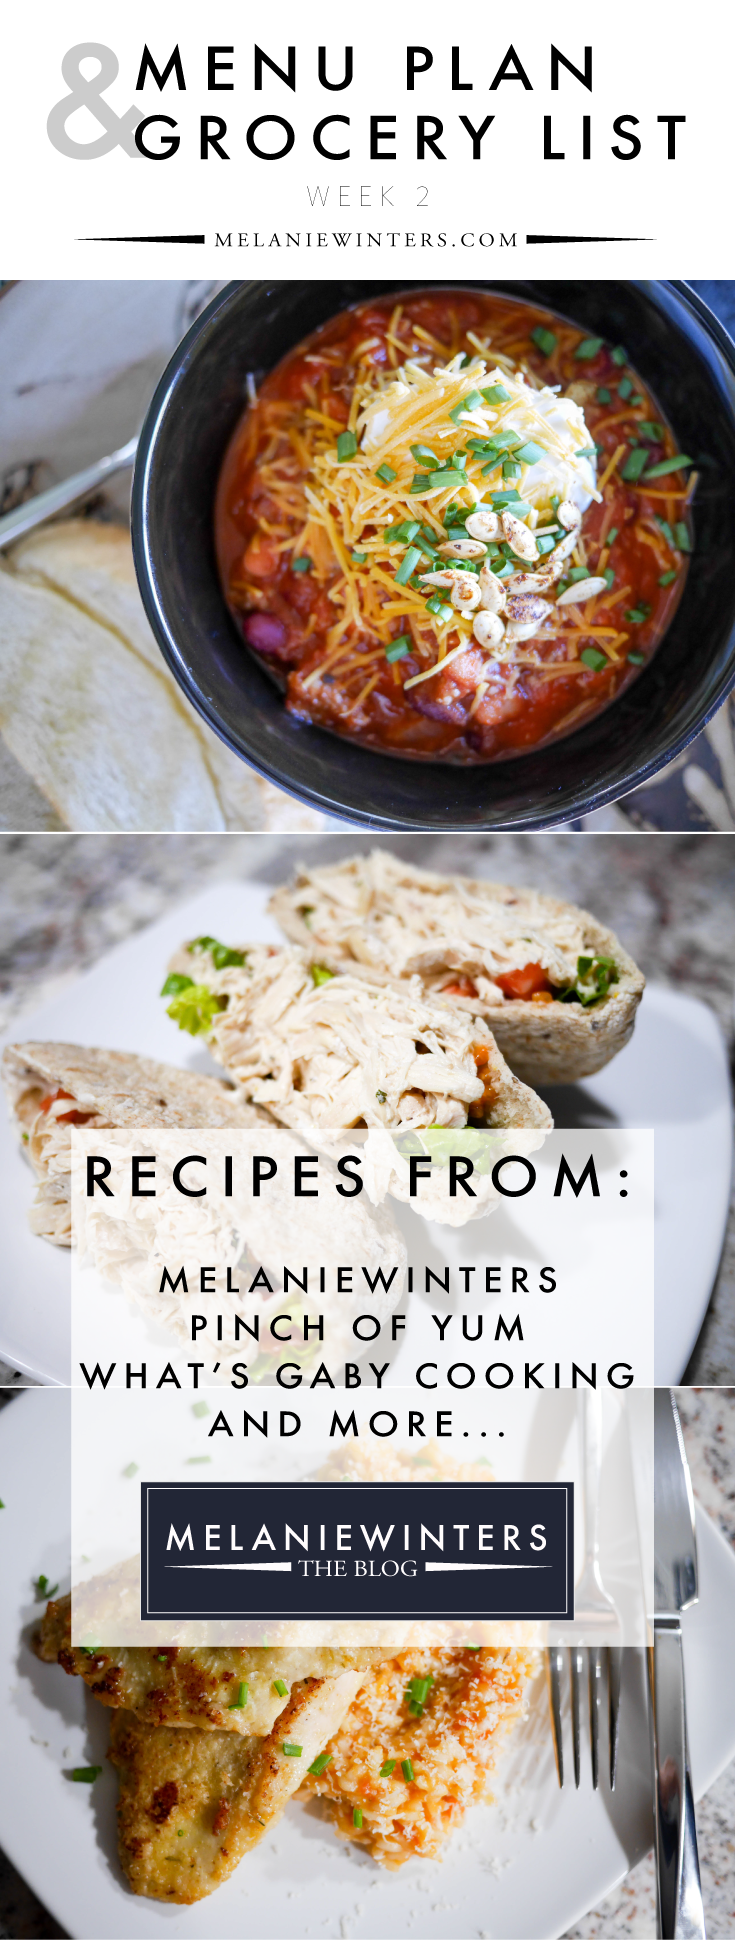 Week-long meal plans that are practical and delicious! Bonus? The grocery list is done for you - split into staples you should have in your freezer/fridge/pantry and and additional items to buy by the week. Pin to have all of the recipes at your fingertips for later!